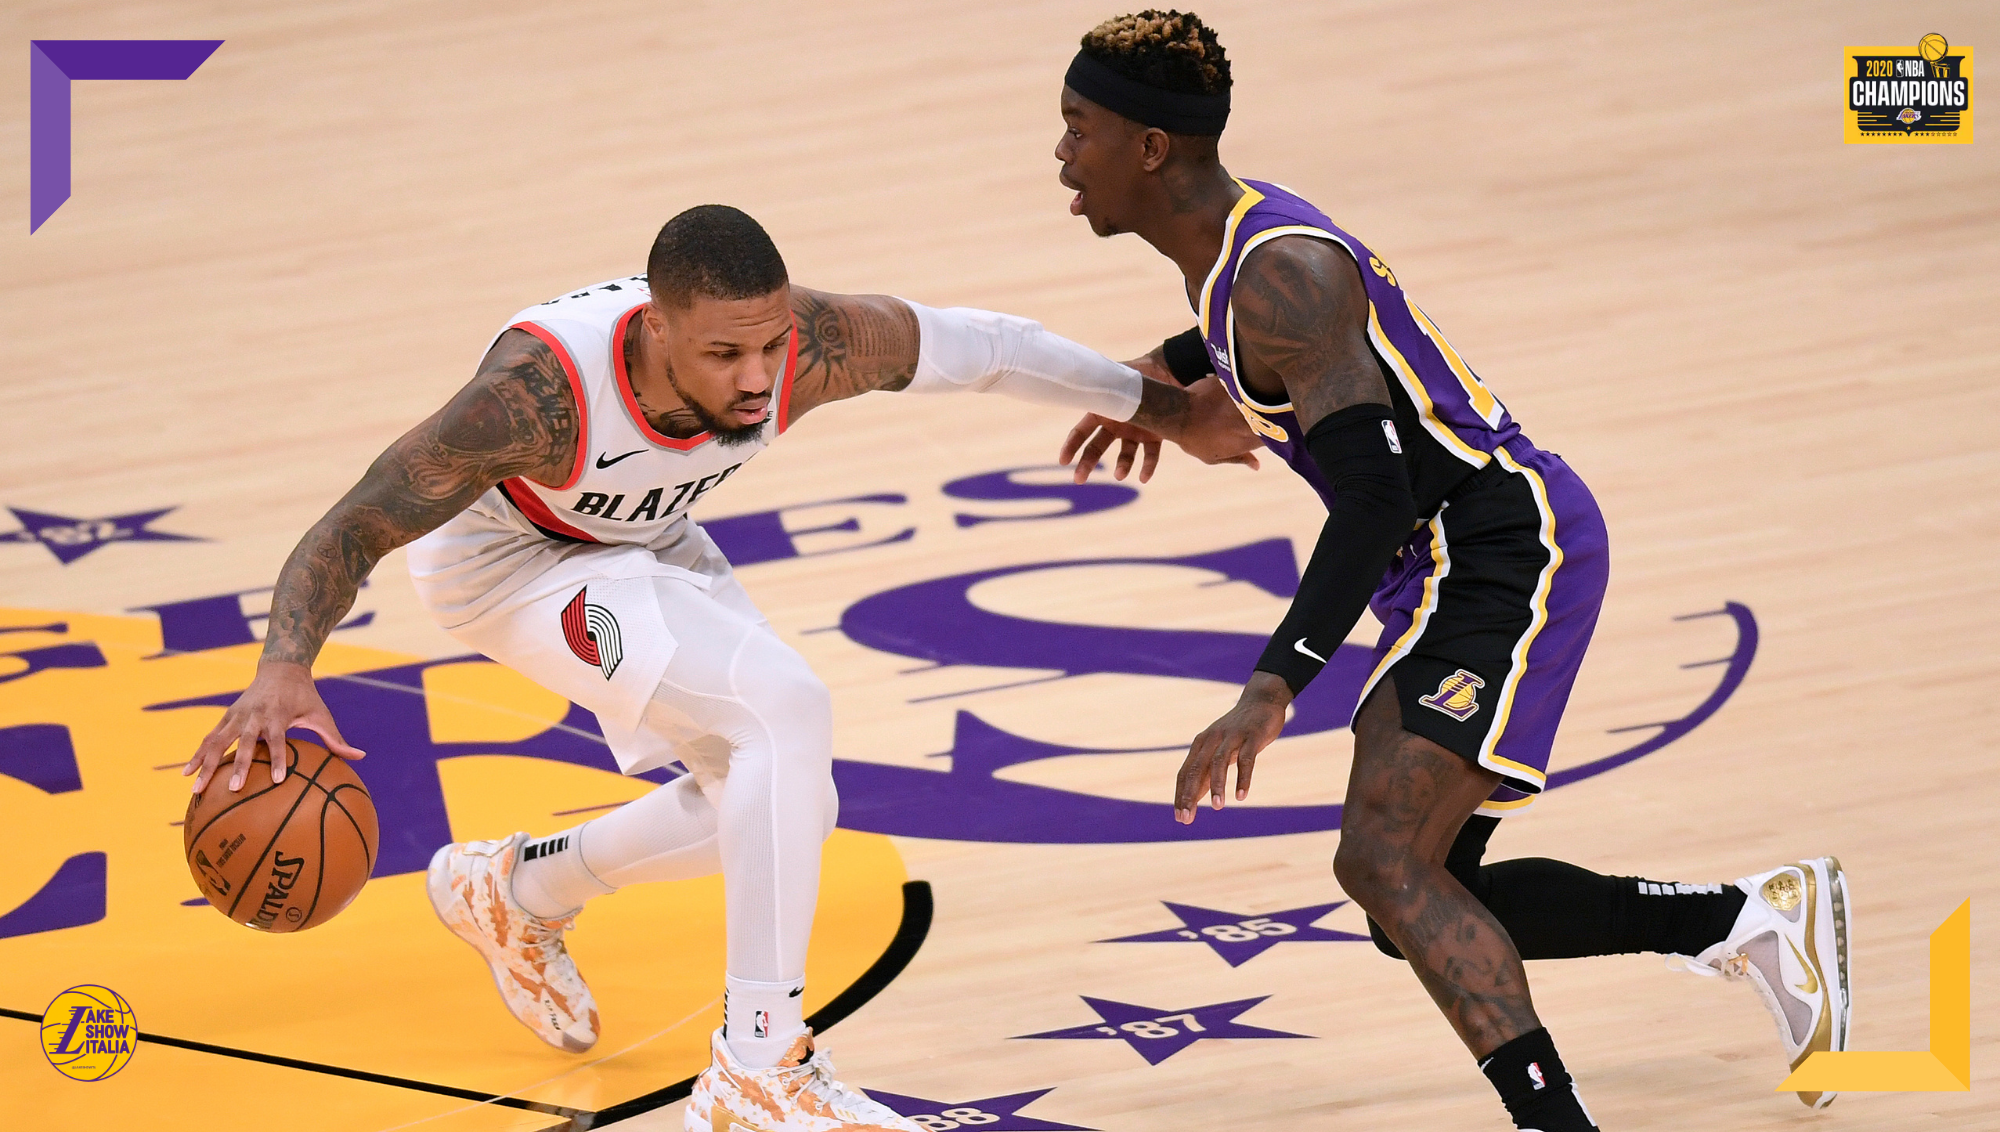 Damian Lillard and Dennis Schroder, Los Angeles Lakers vs the Portland Trail Blazers